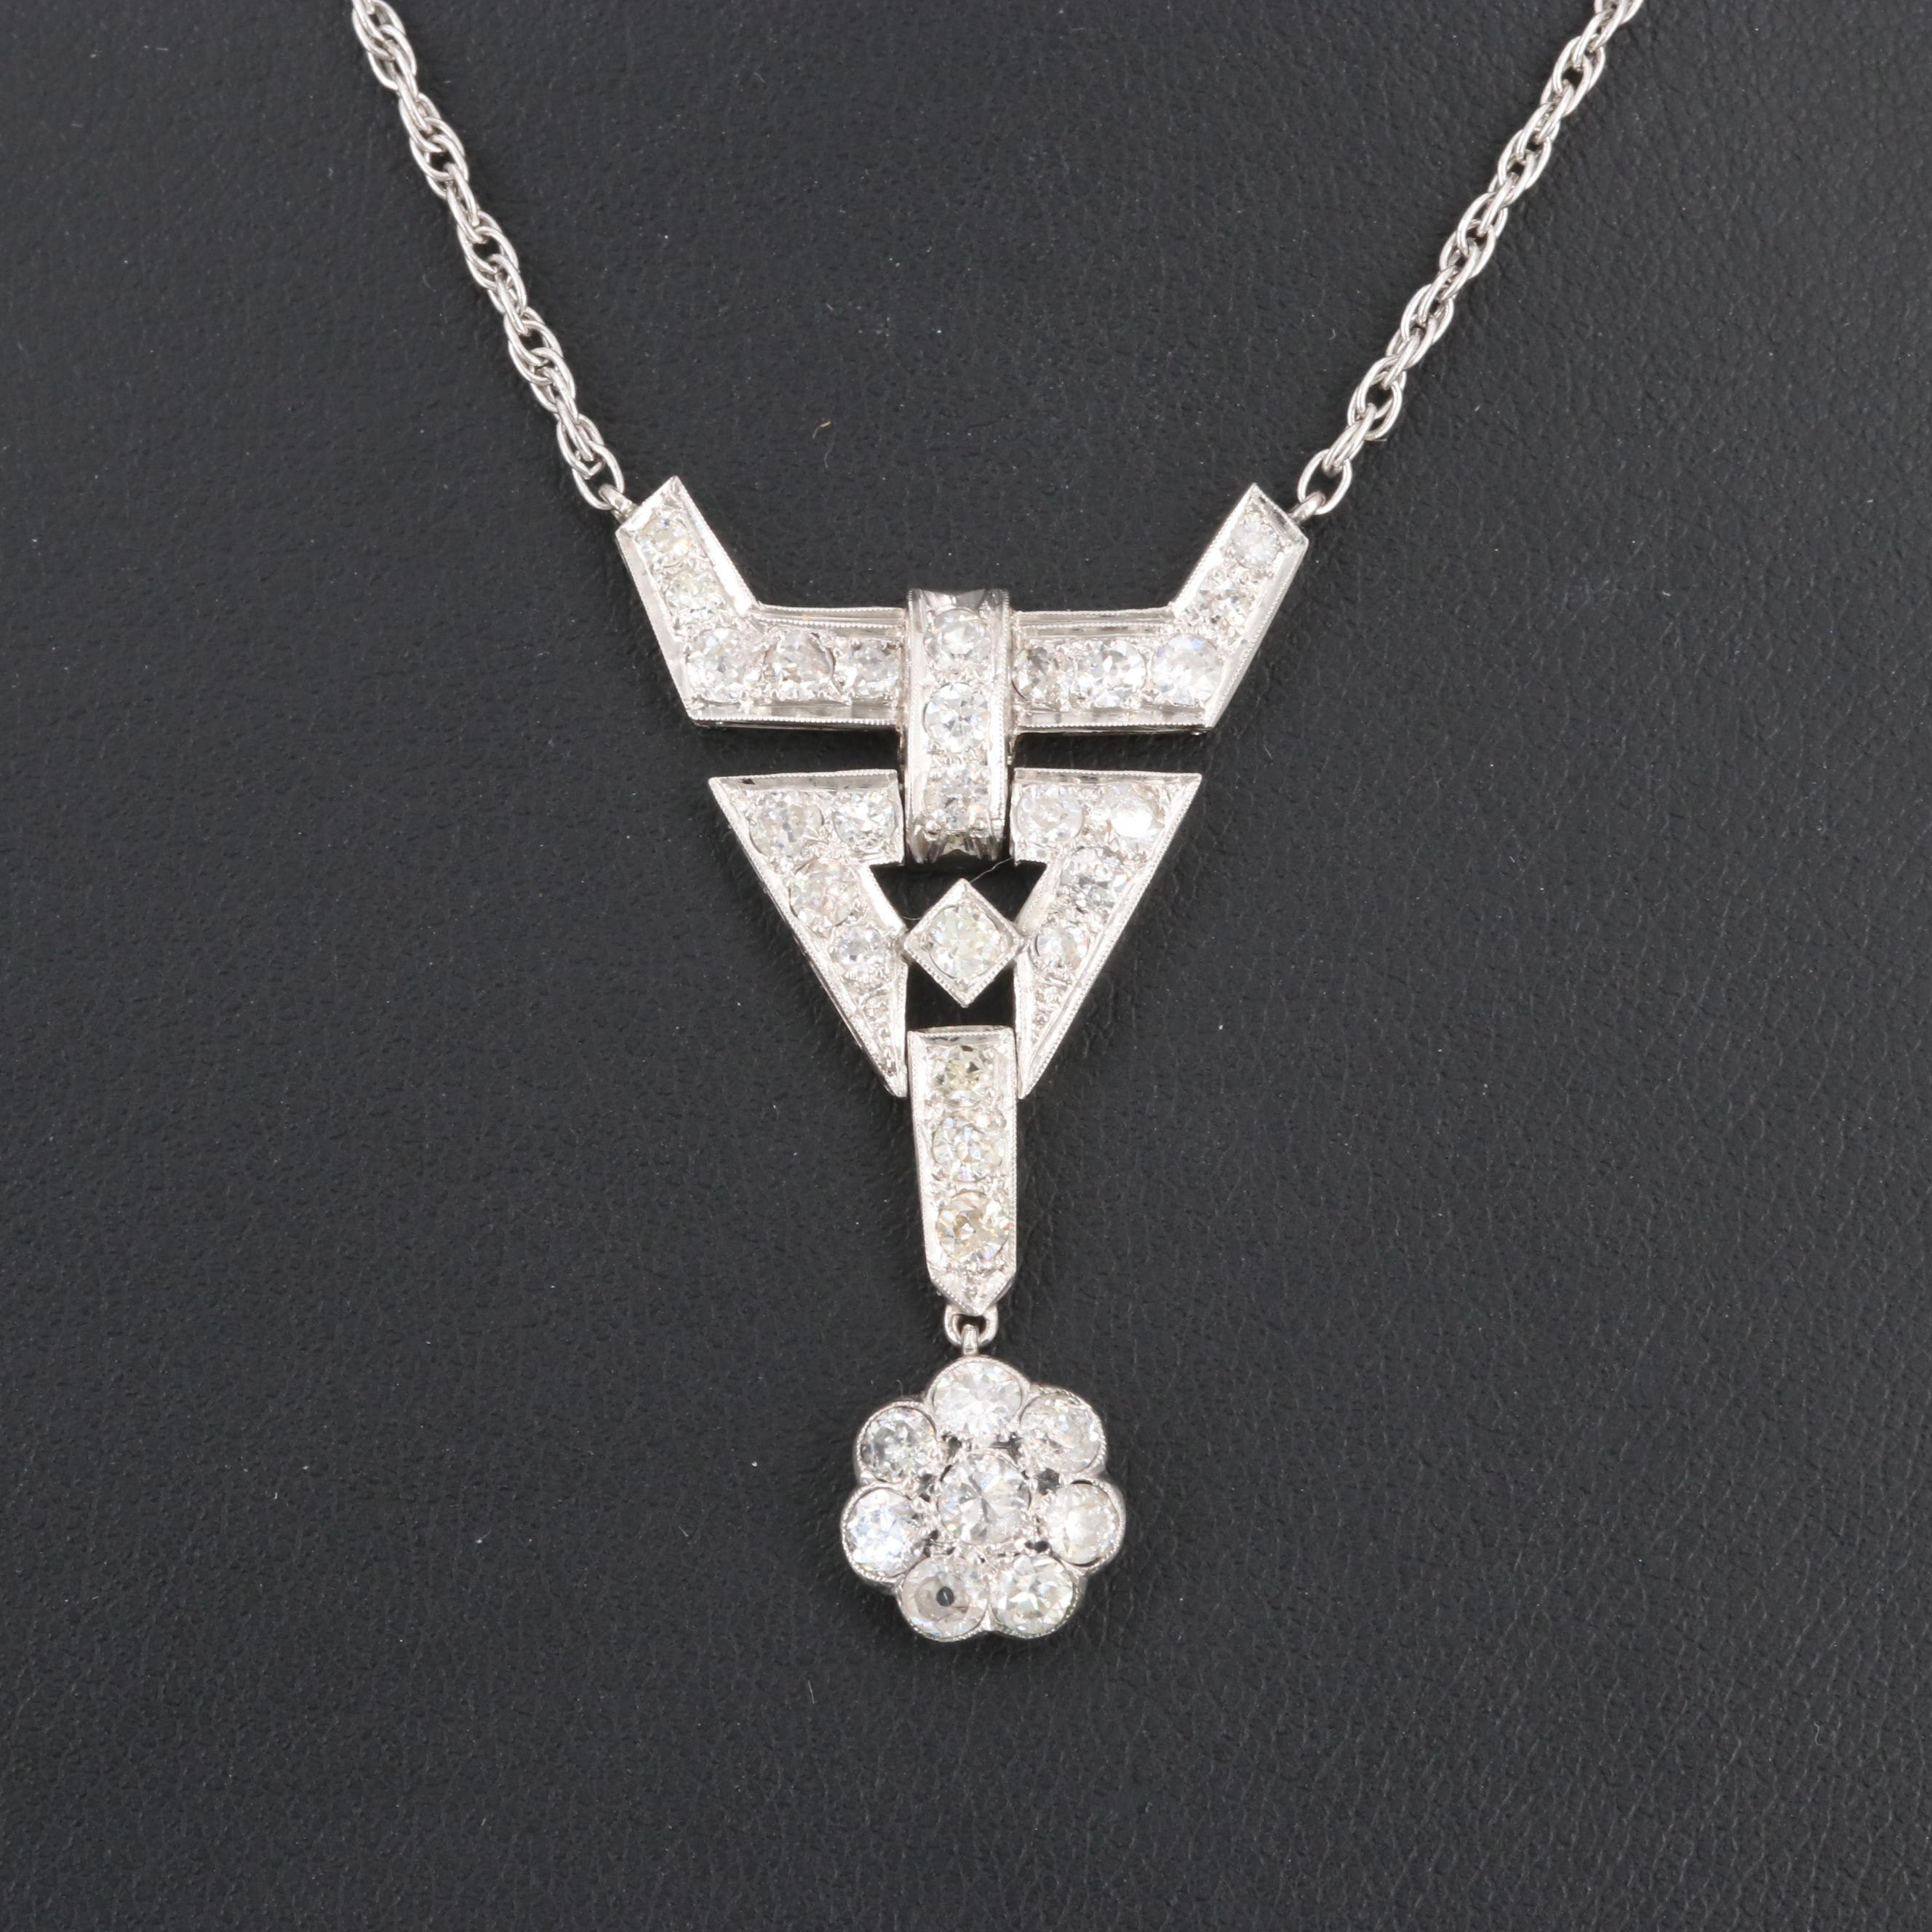 Platinum 1.75 CTW Diamond Pendant on Sterling Silver Chain